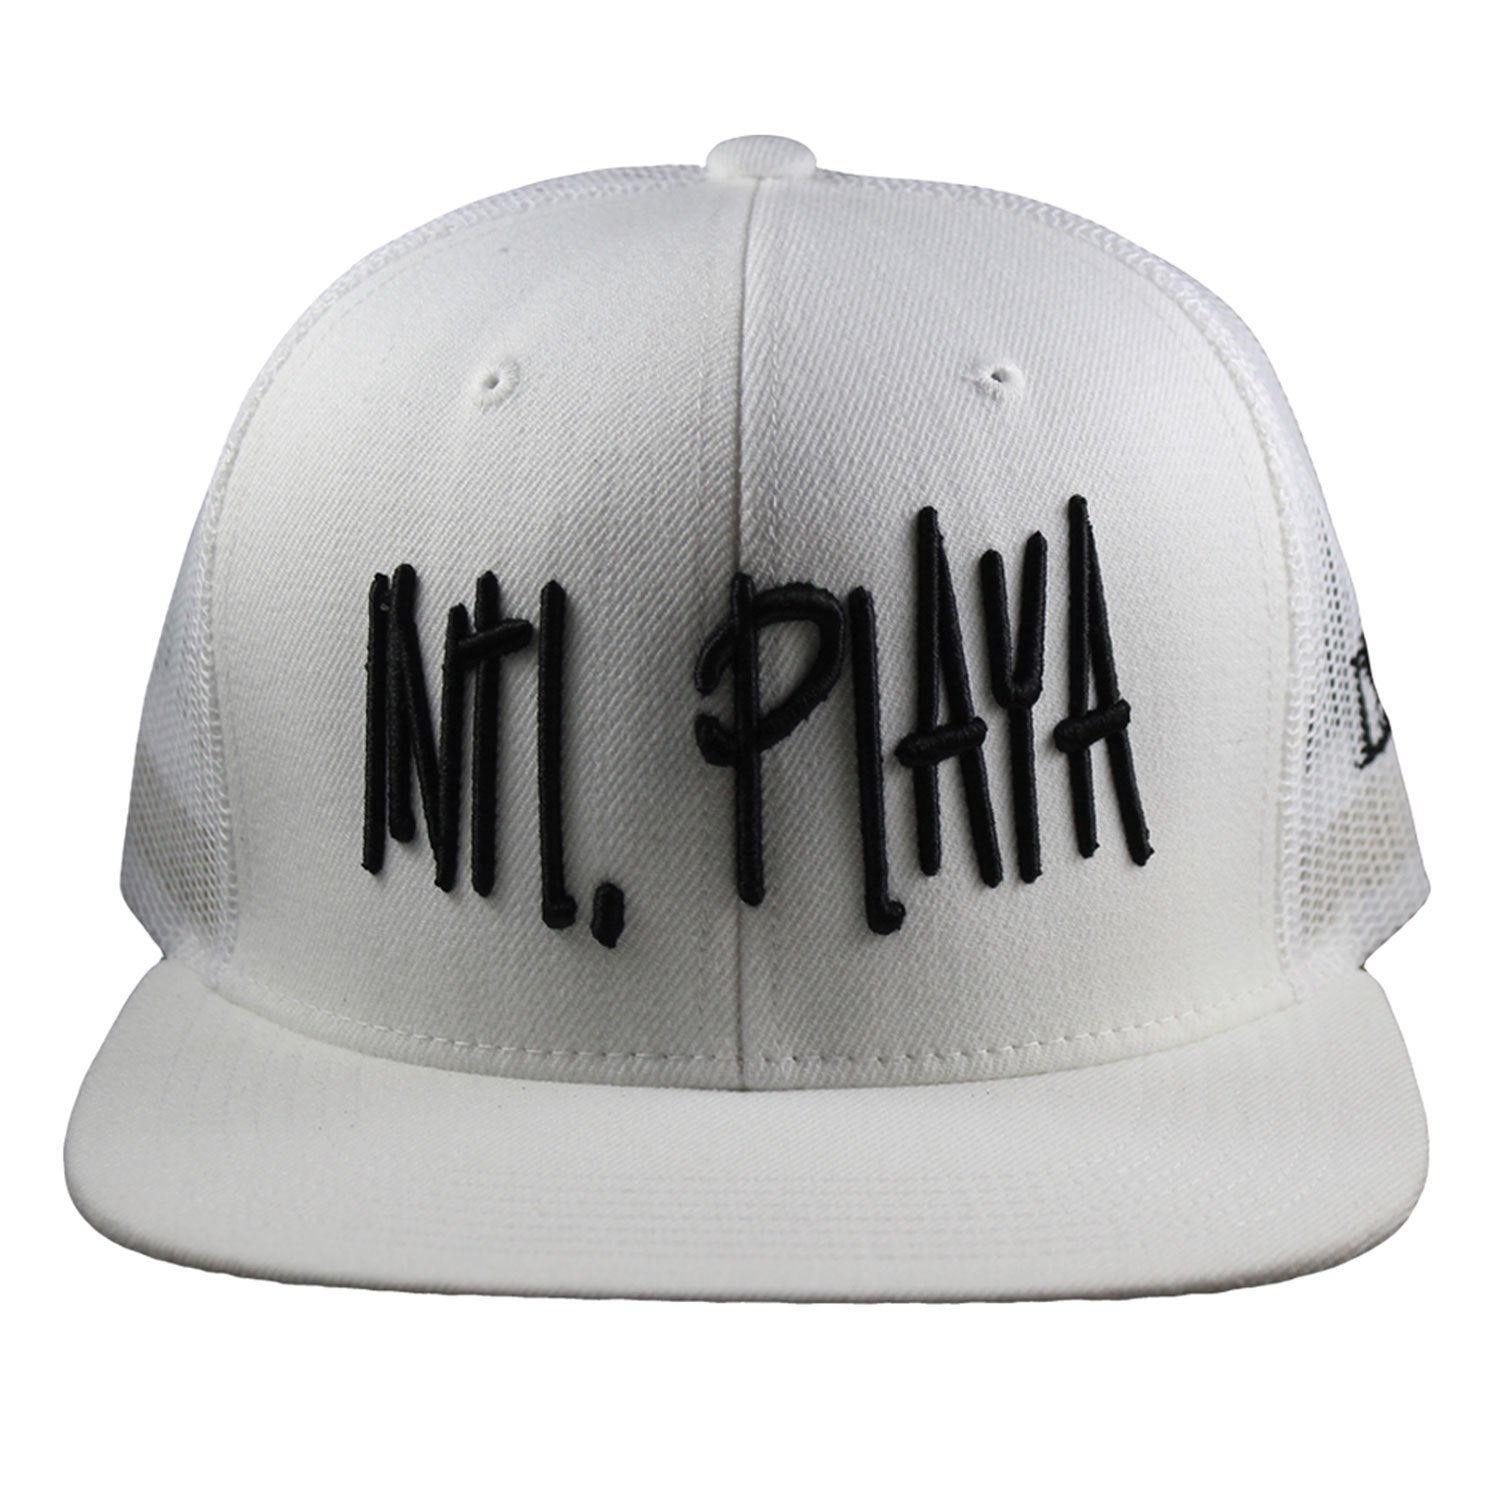 White intl. playa hat